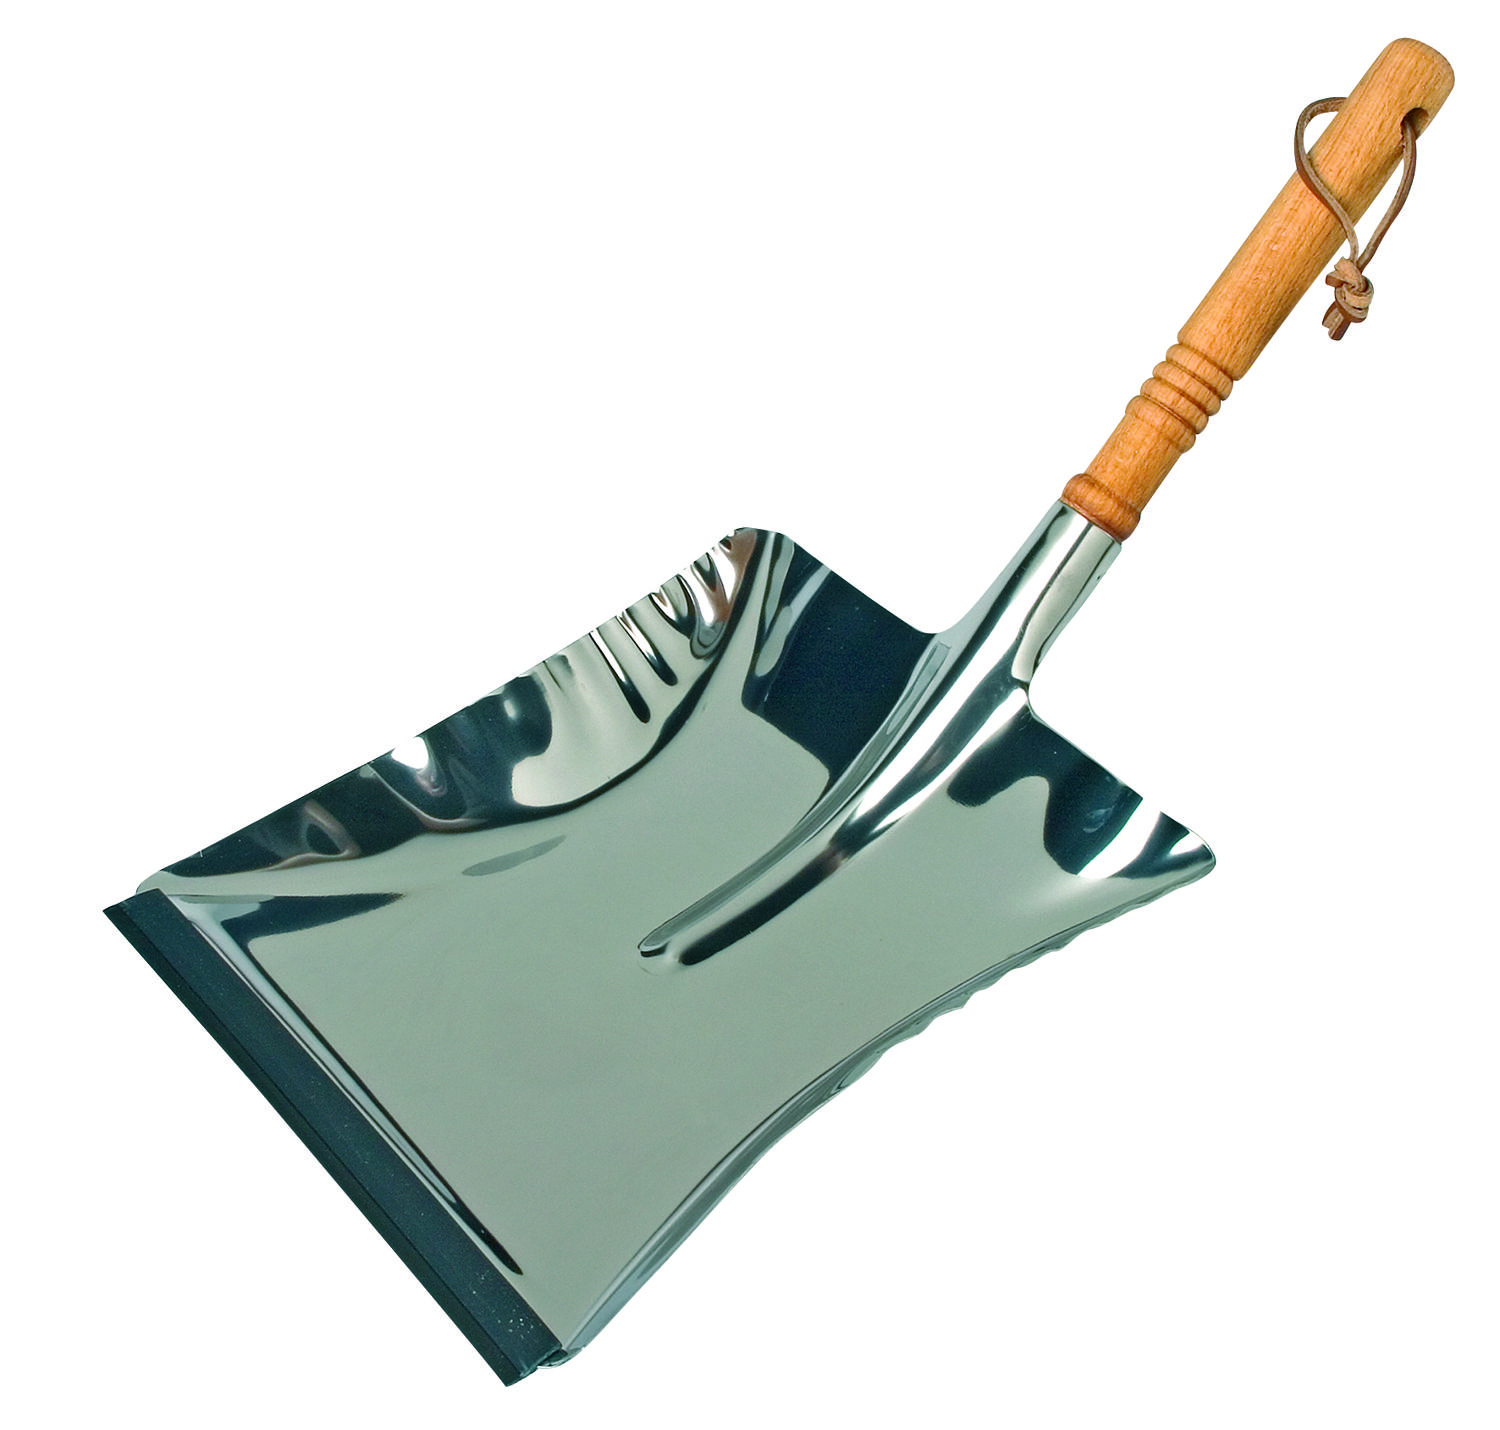 Dustpan - Stainless Steel with beech handle 45cm